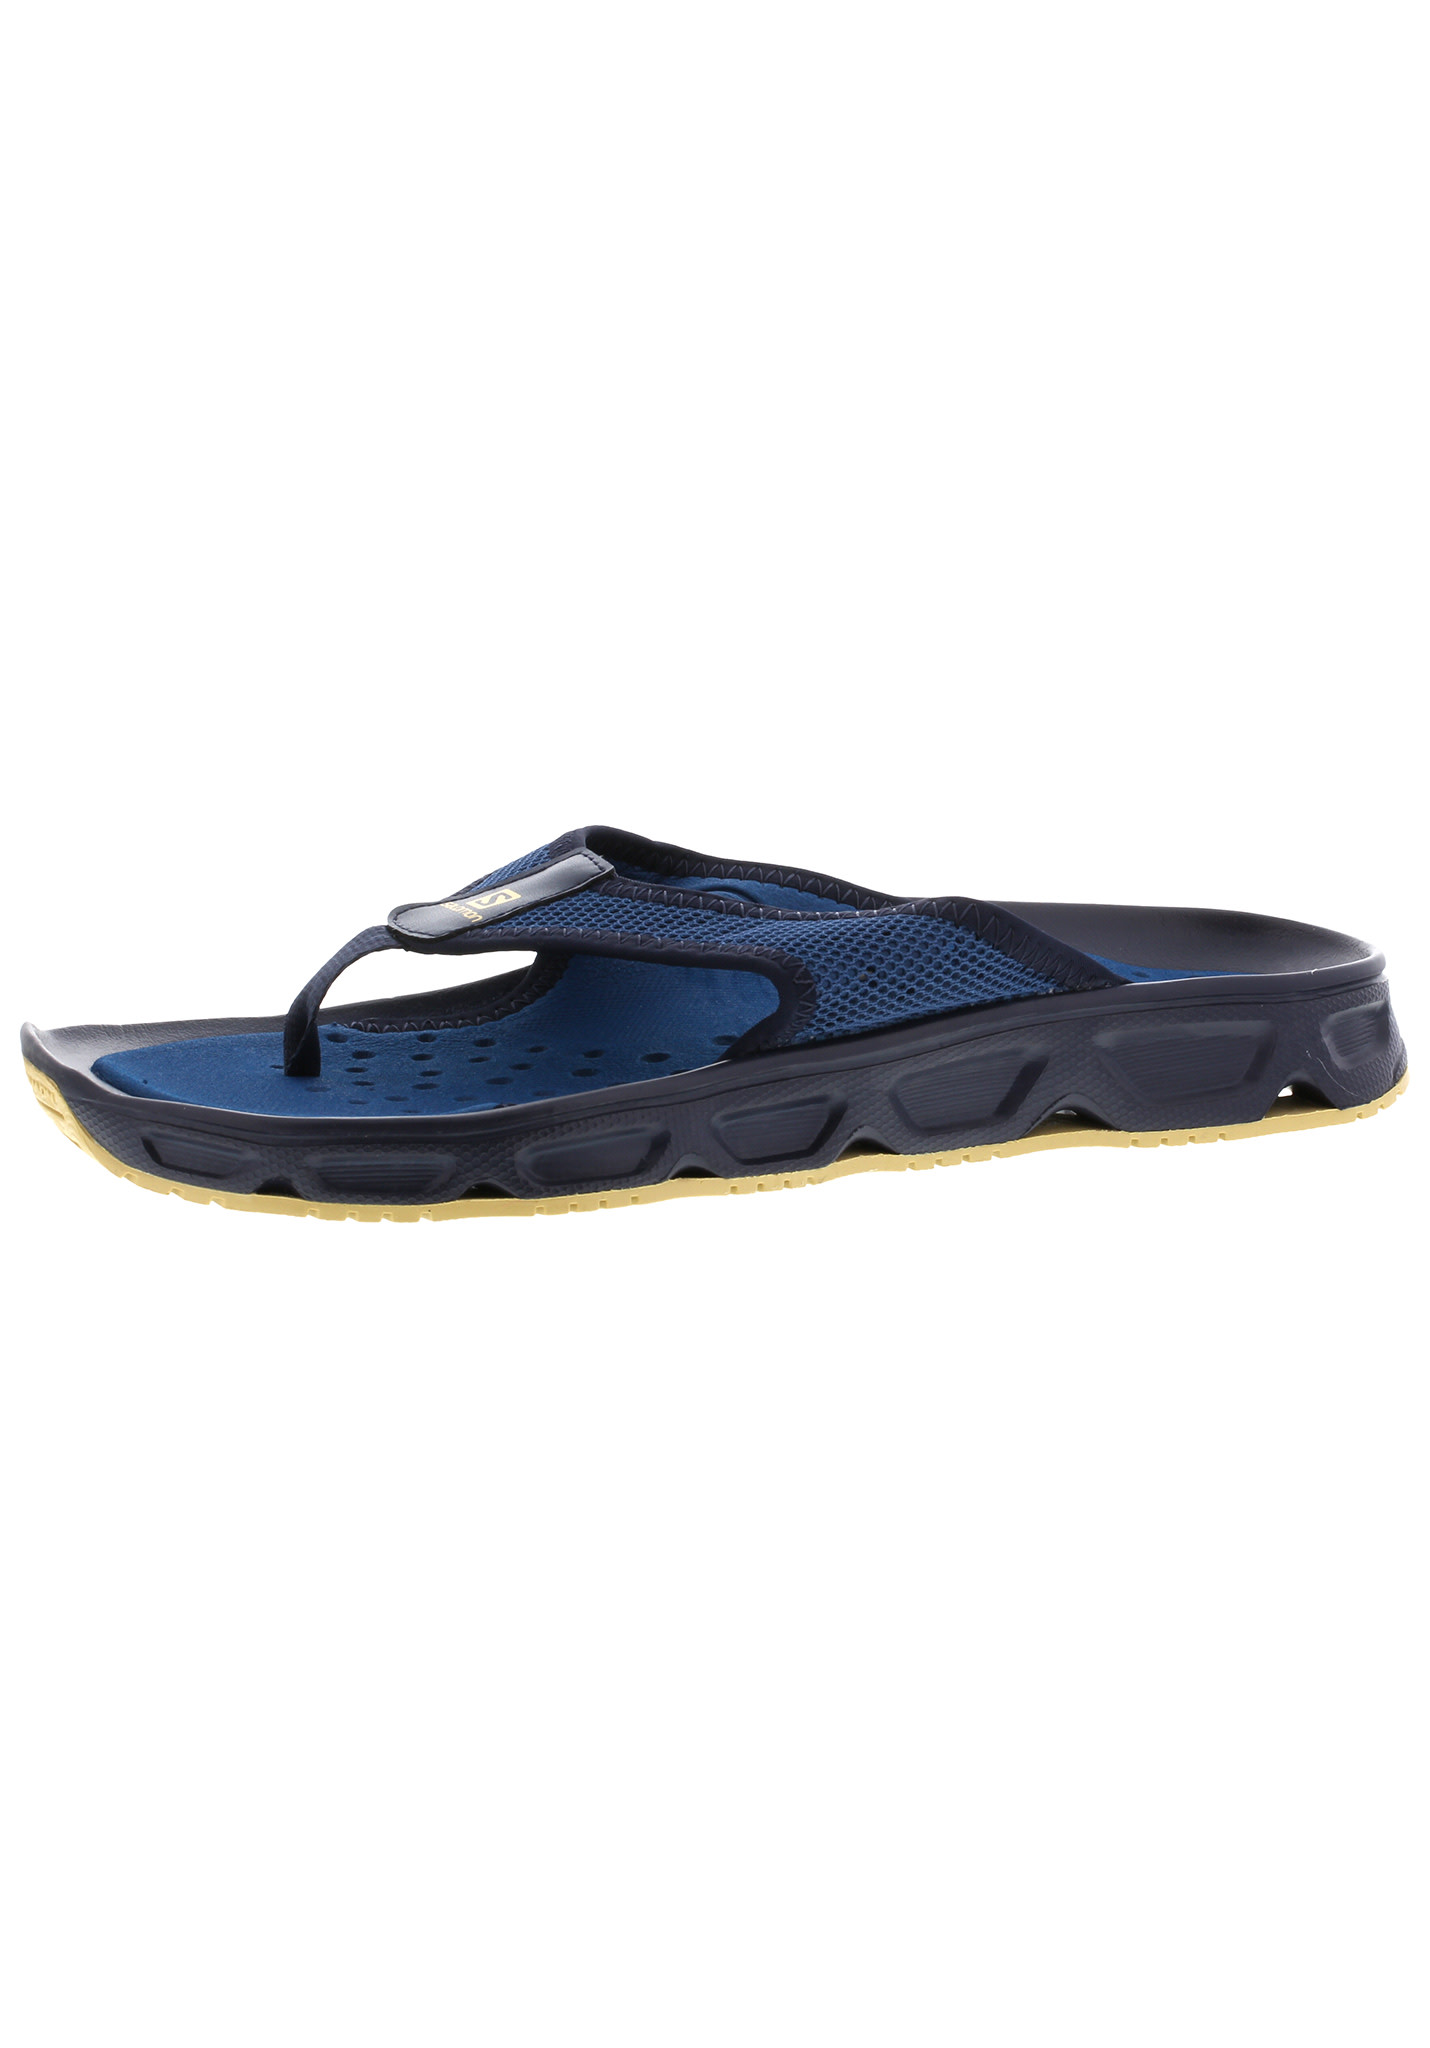 3510dcf0d15 Salomon RX Break 4.0 - Tongs pour Homme - Bleu